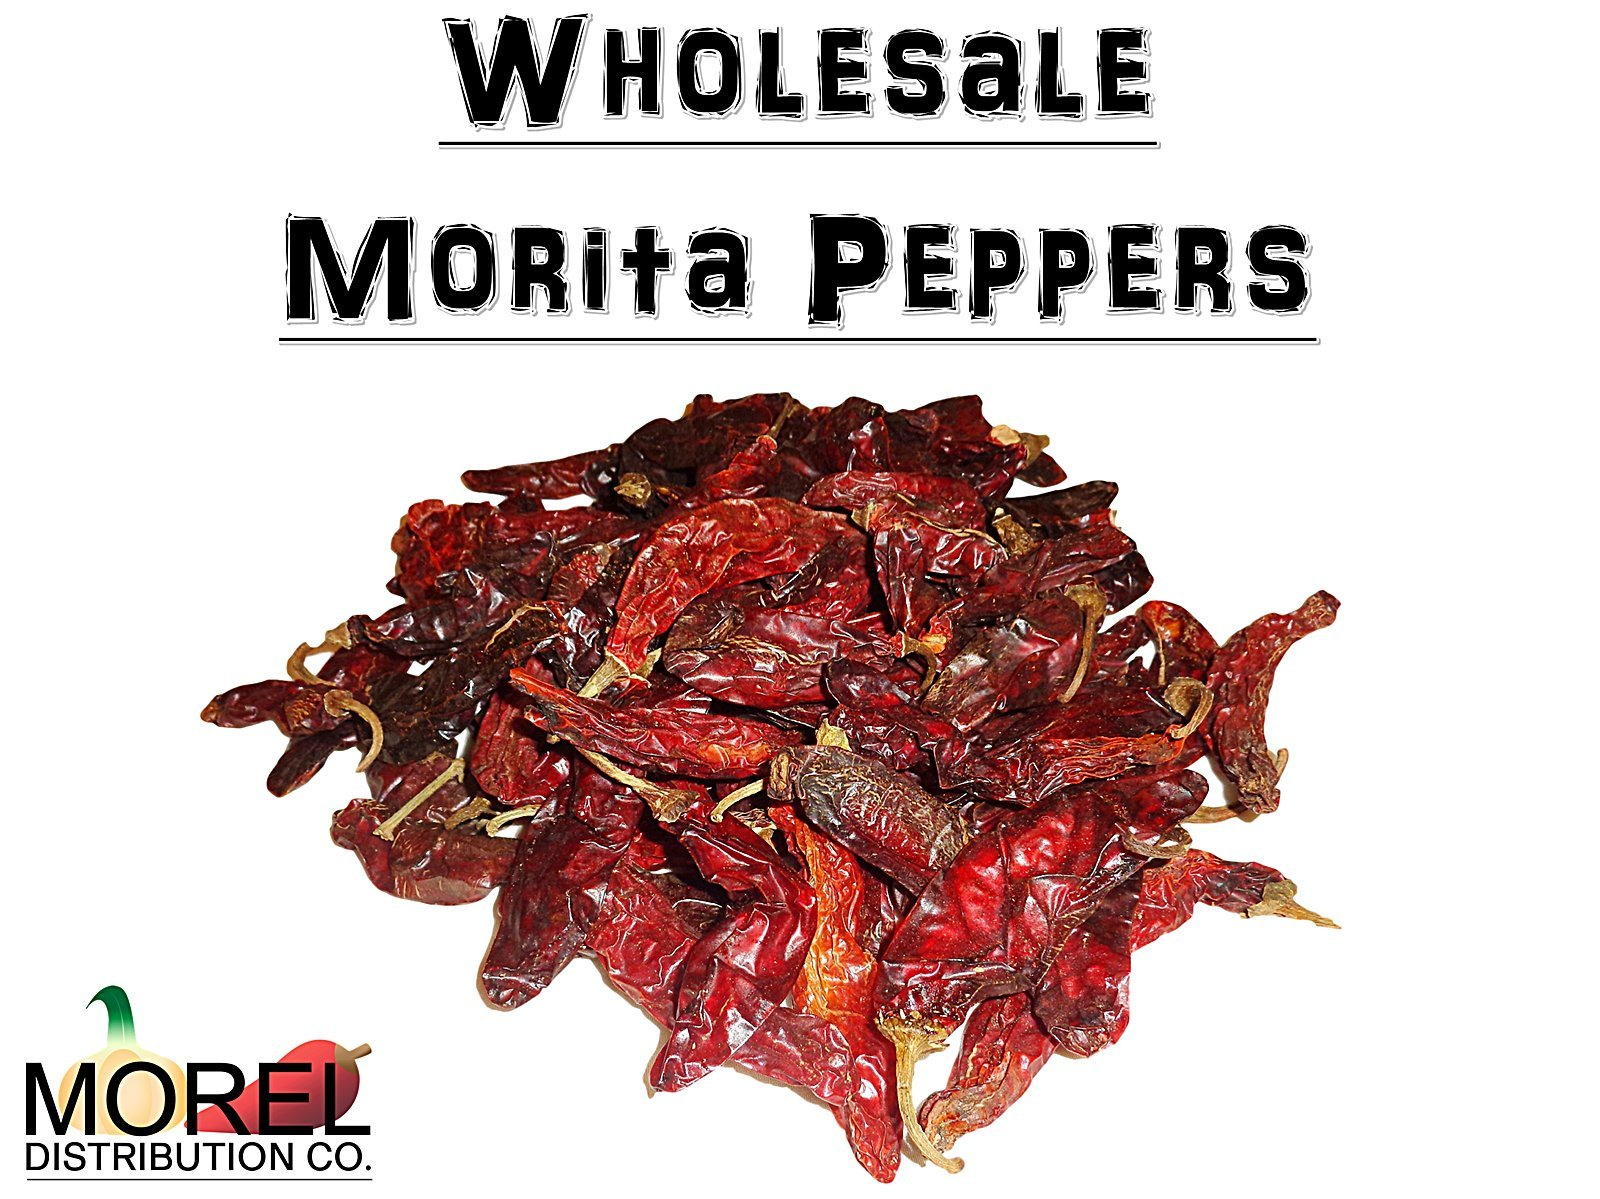 Dried Chile Morita Peppers //Chipotle// Bulk Weights: 2 Lbs, 5 Lbs, and 10 Lbs!! (2 LBS)